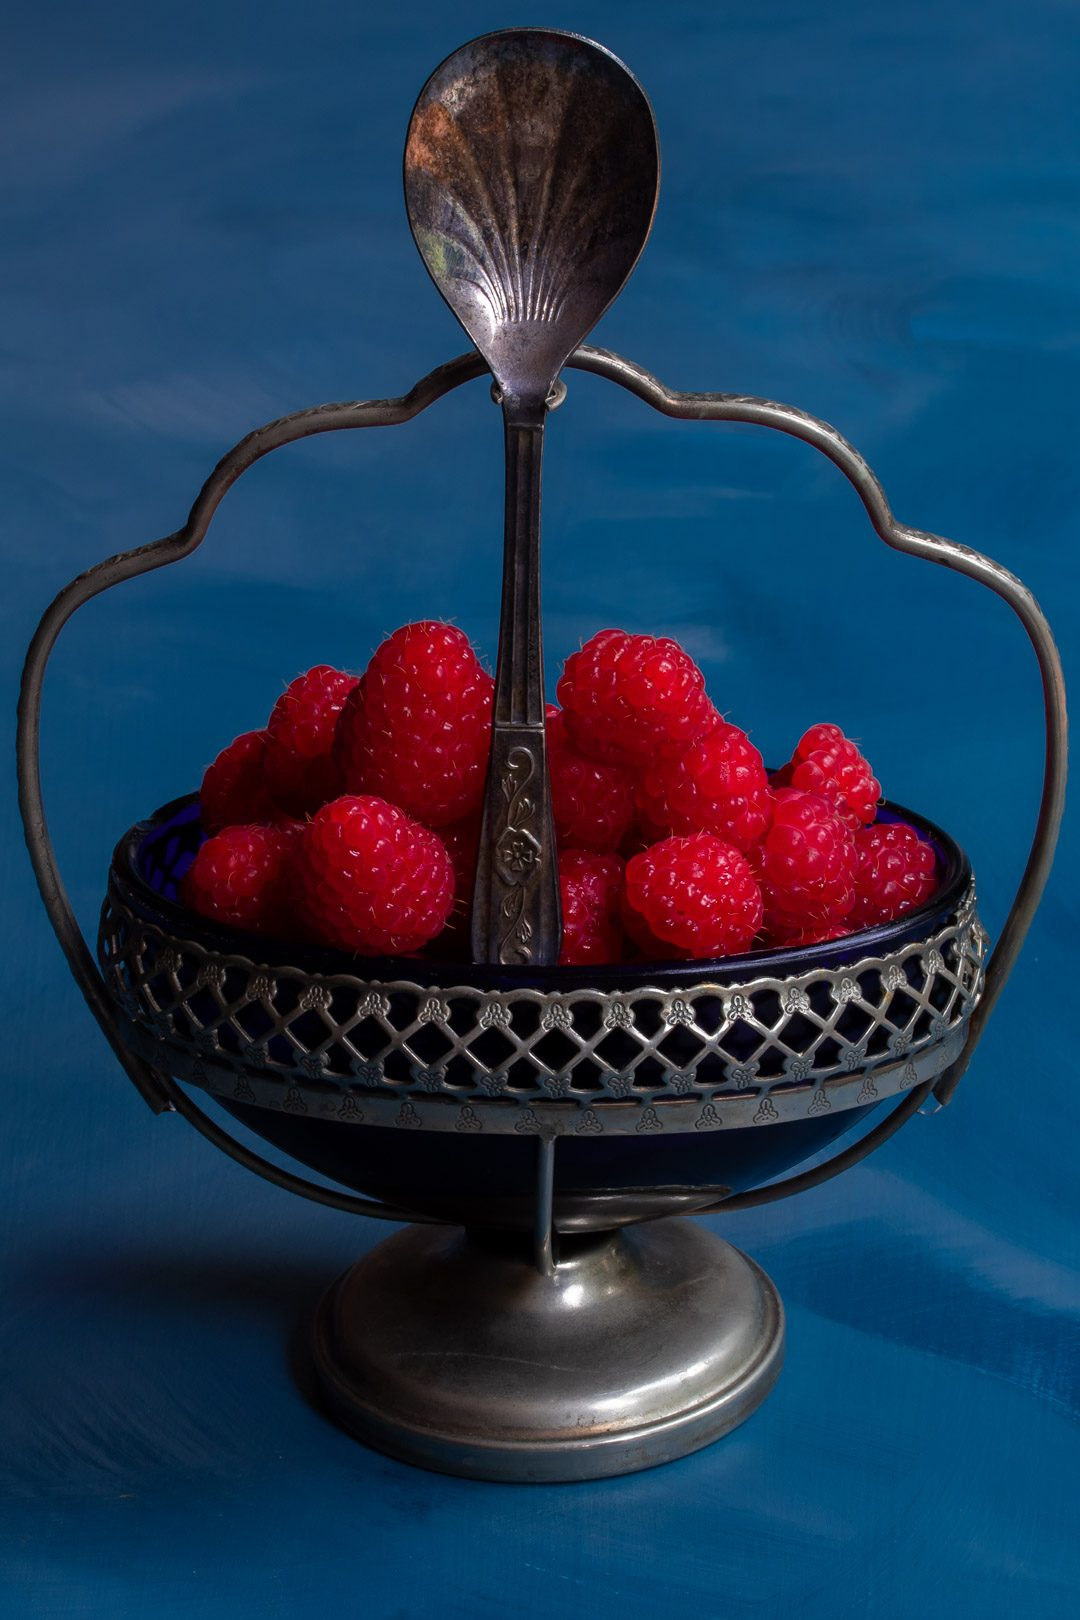 Making Raspberry shrub syrup drinking vinegar with raspberries in vintage blue glass sugar bowl with spoon centre